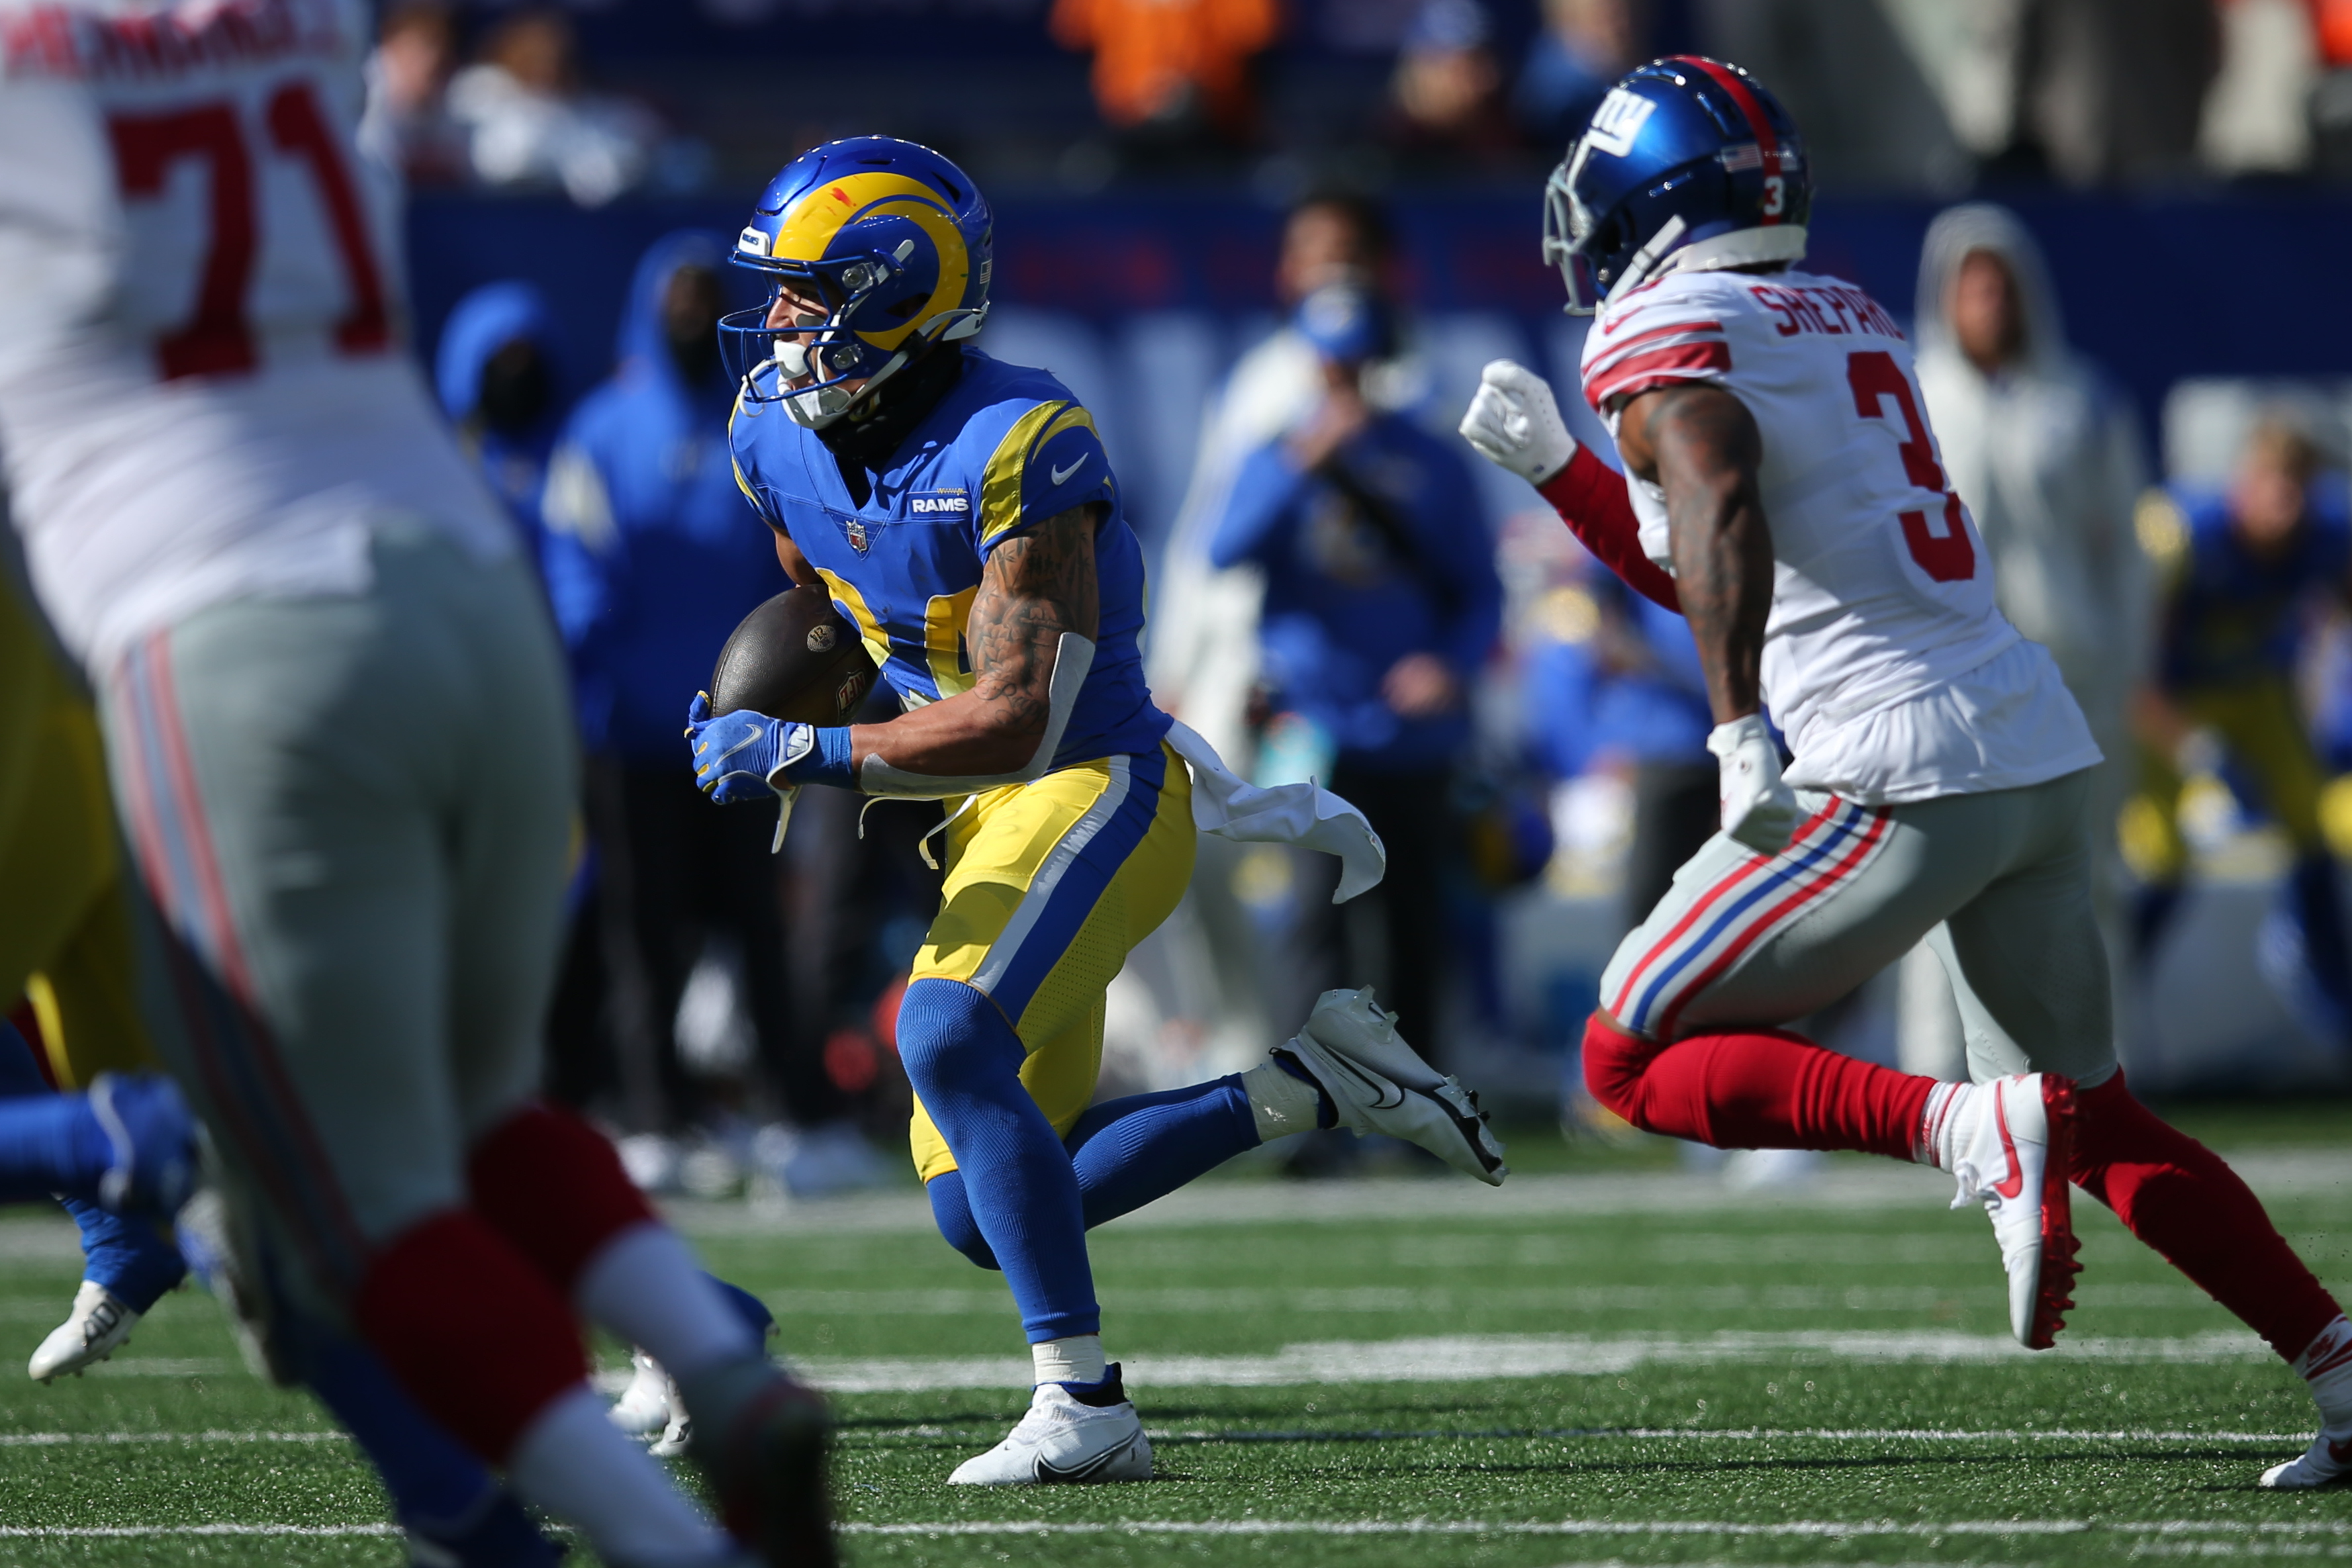 NFL: Los Angeles Rams at New York Giants